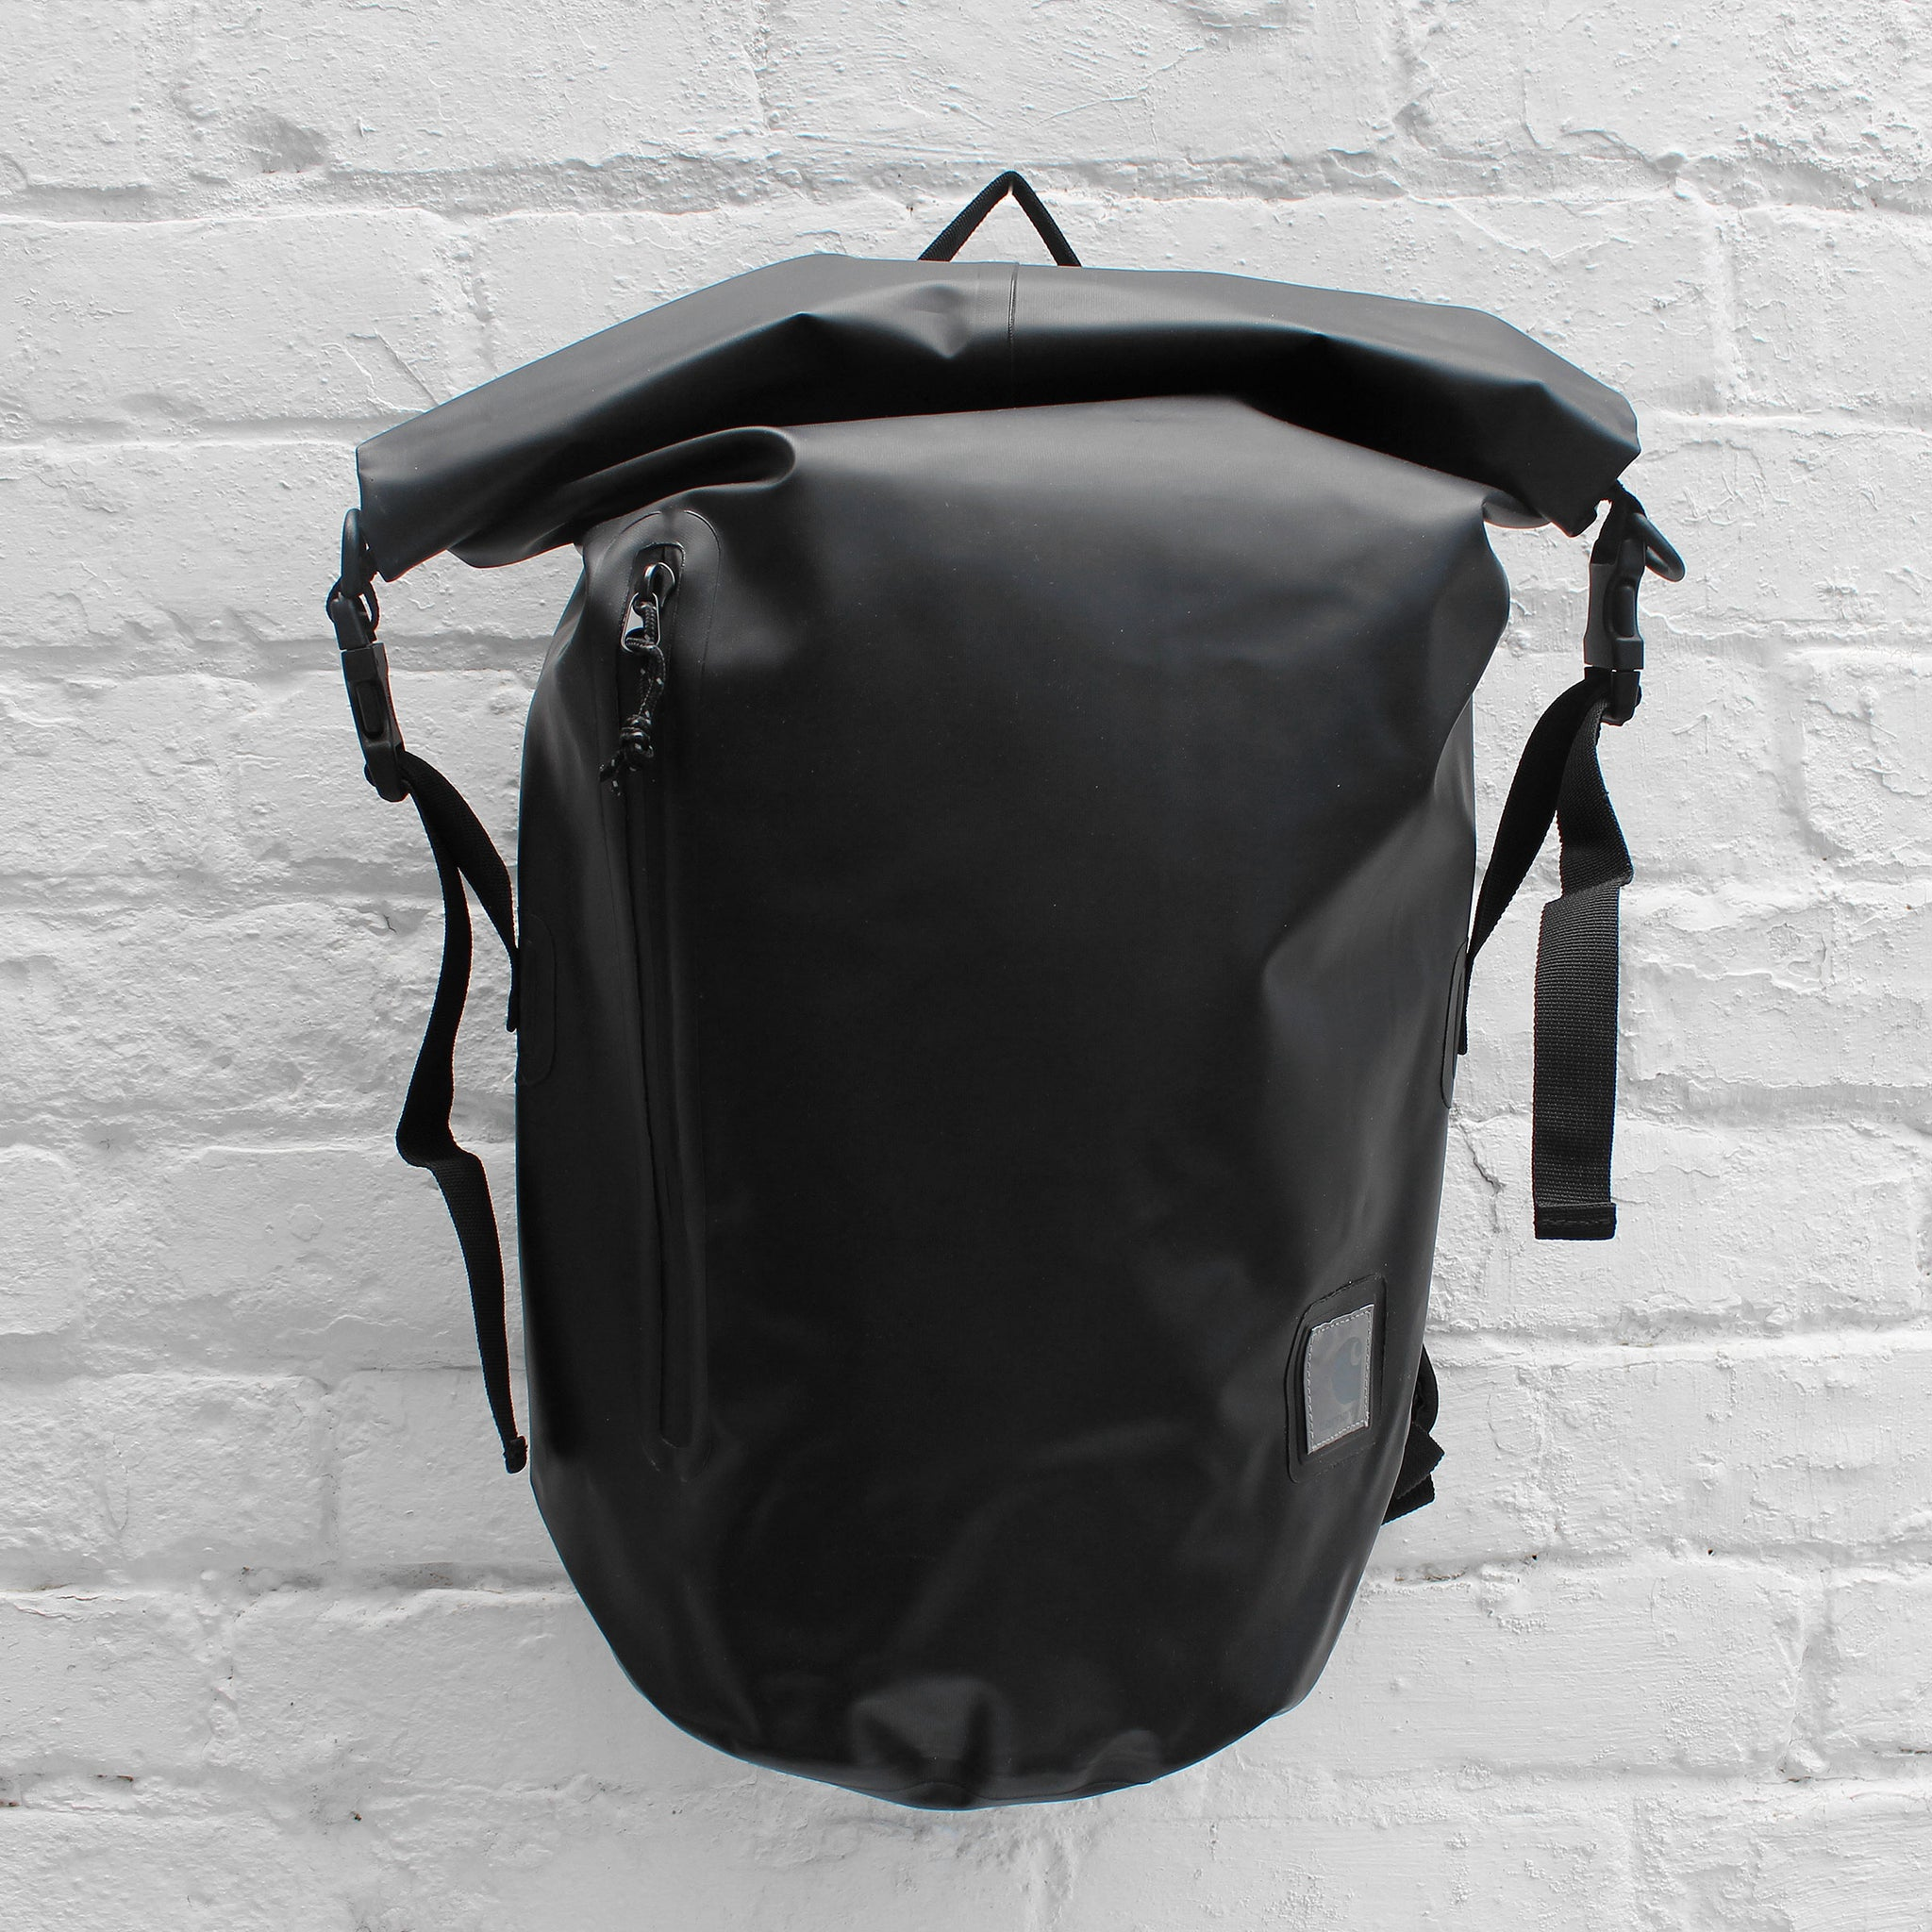 Carhartt WIP Neptune Backpack Black